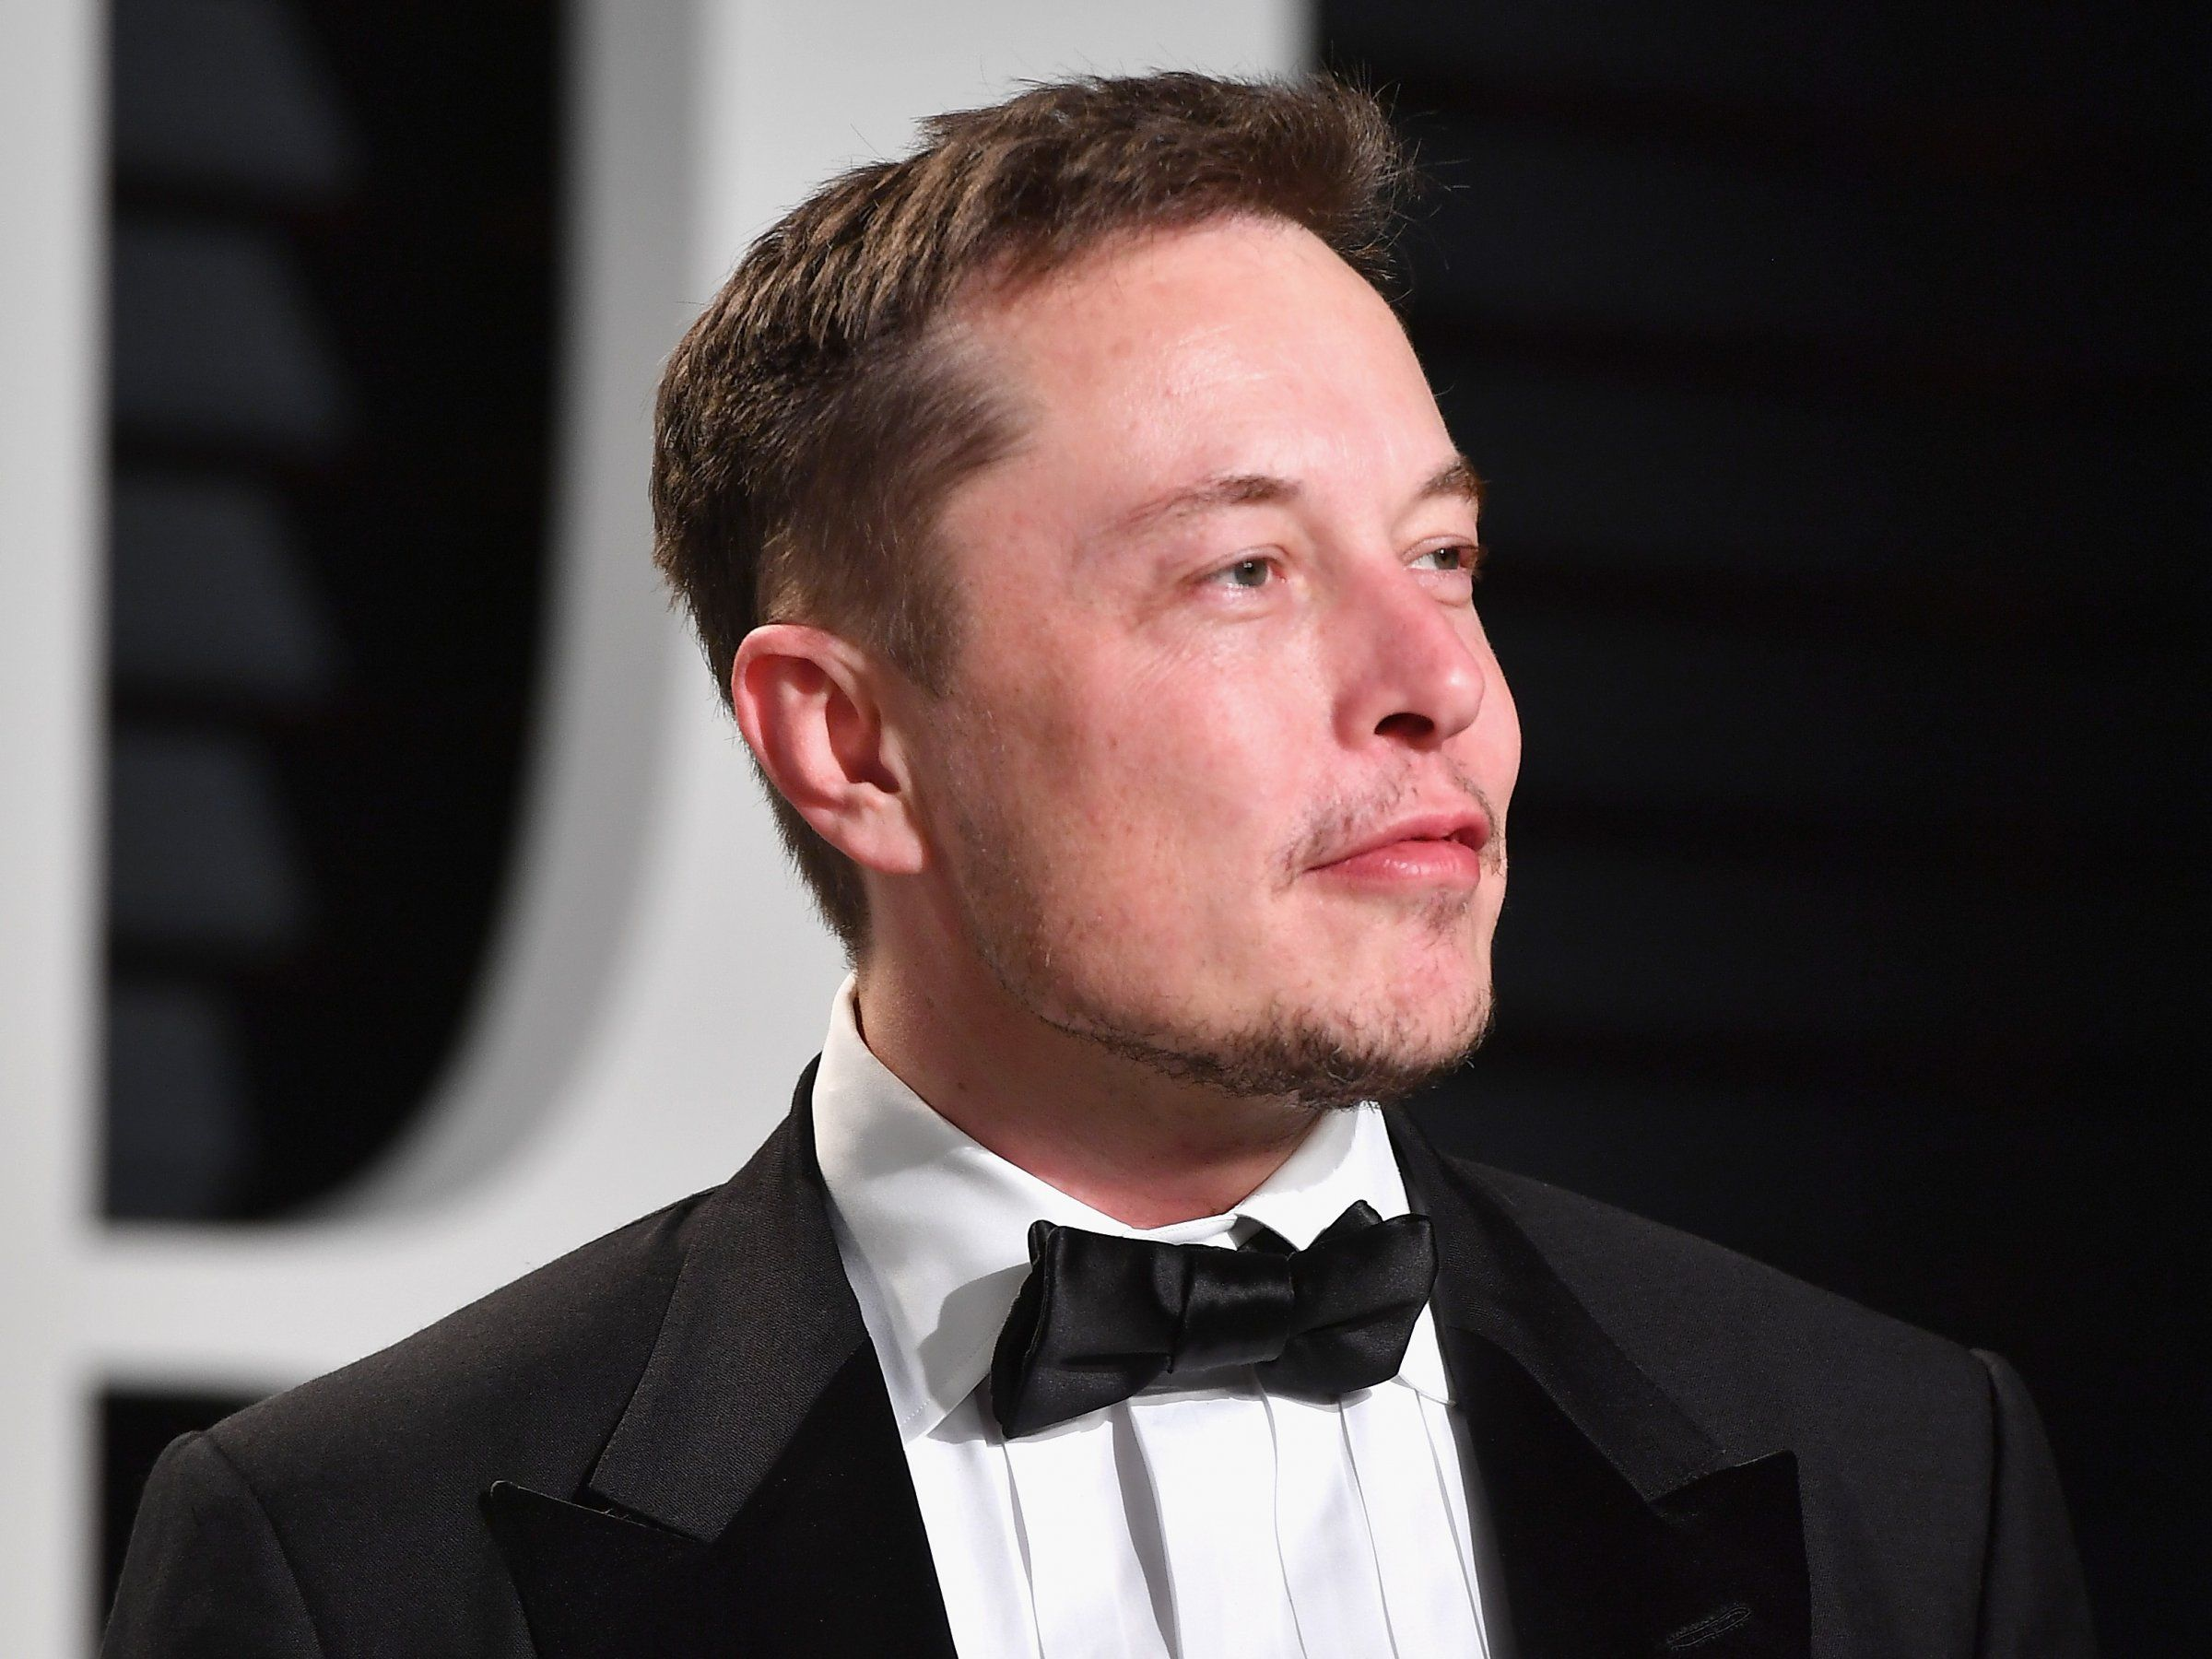 How Elon Musk Newly The 4th Richest Person In America Spends His Fortune Business Insider Elon Musk Elon Musk Tesla Elon